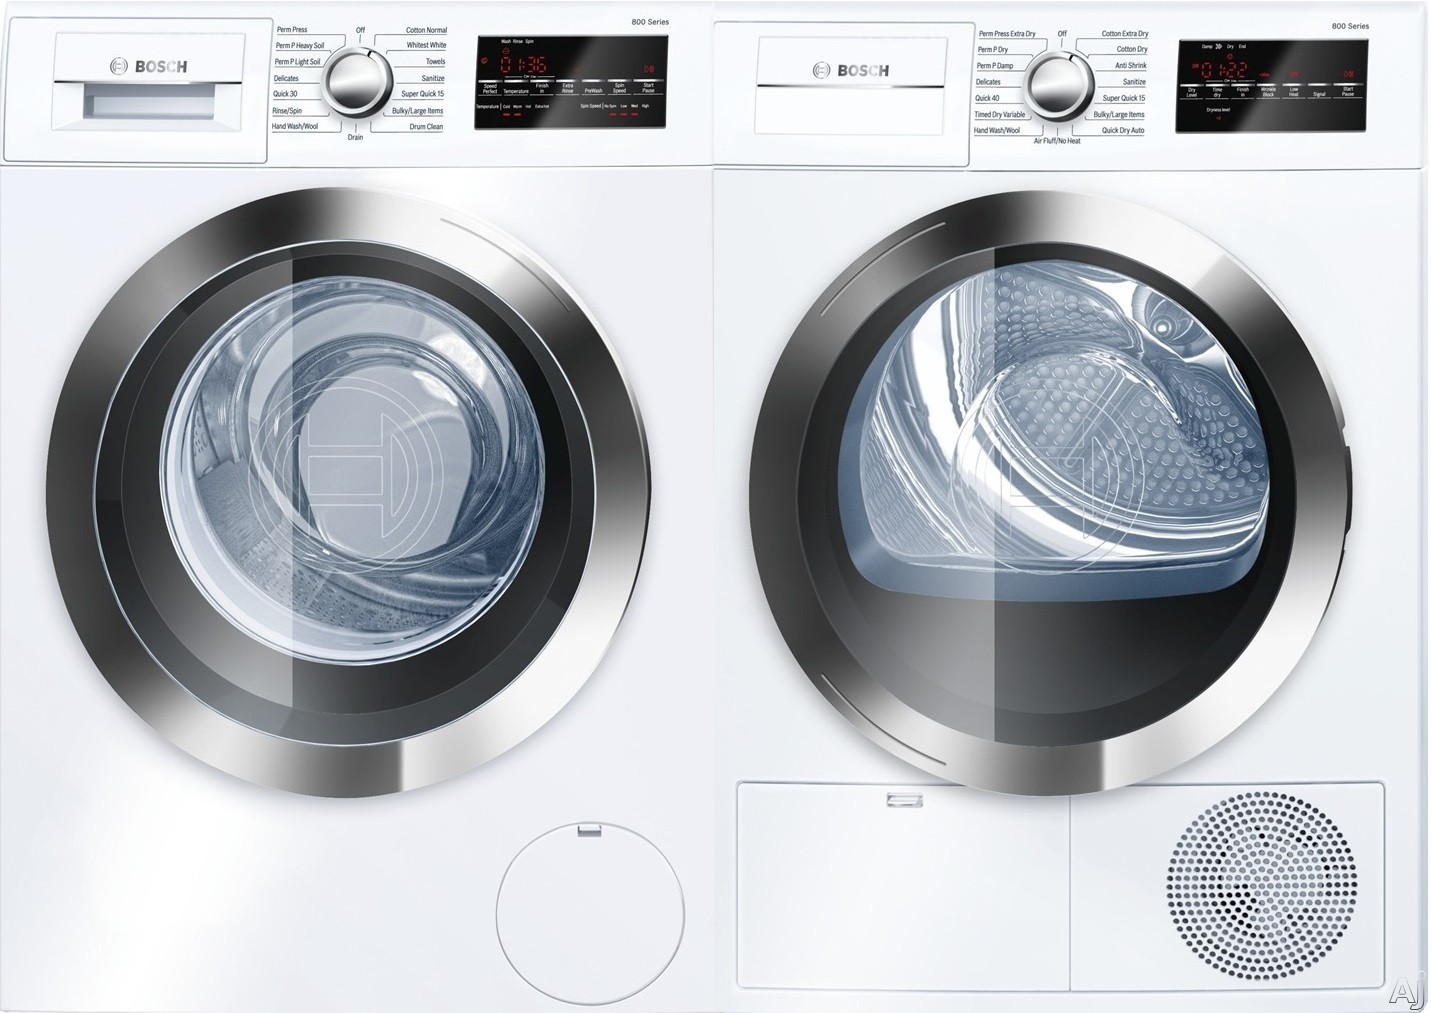 Bosch Bowadreuc402 Side By Side Washer Amp Dryer Set With